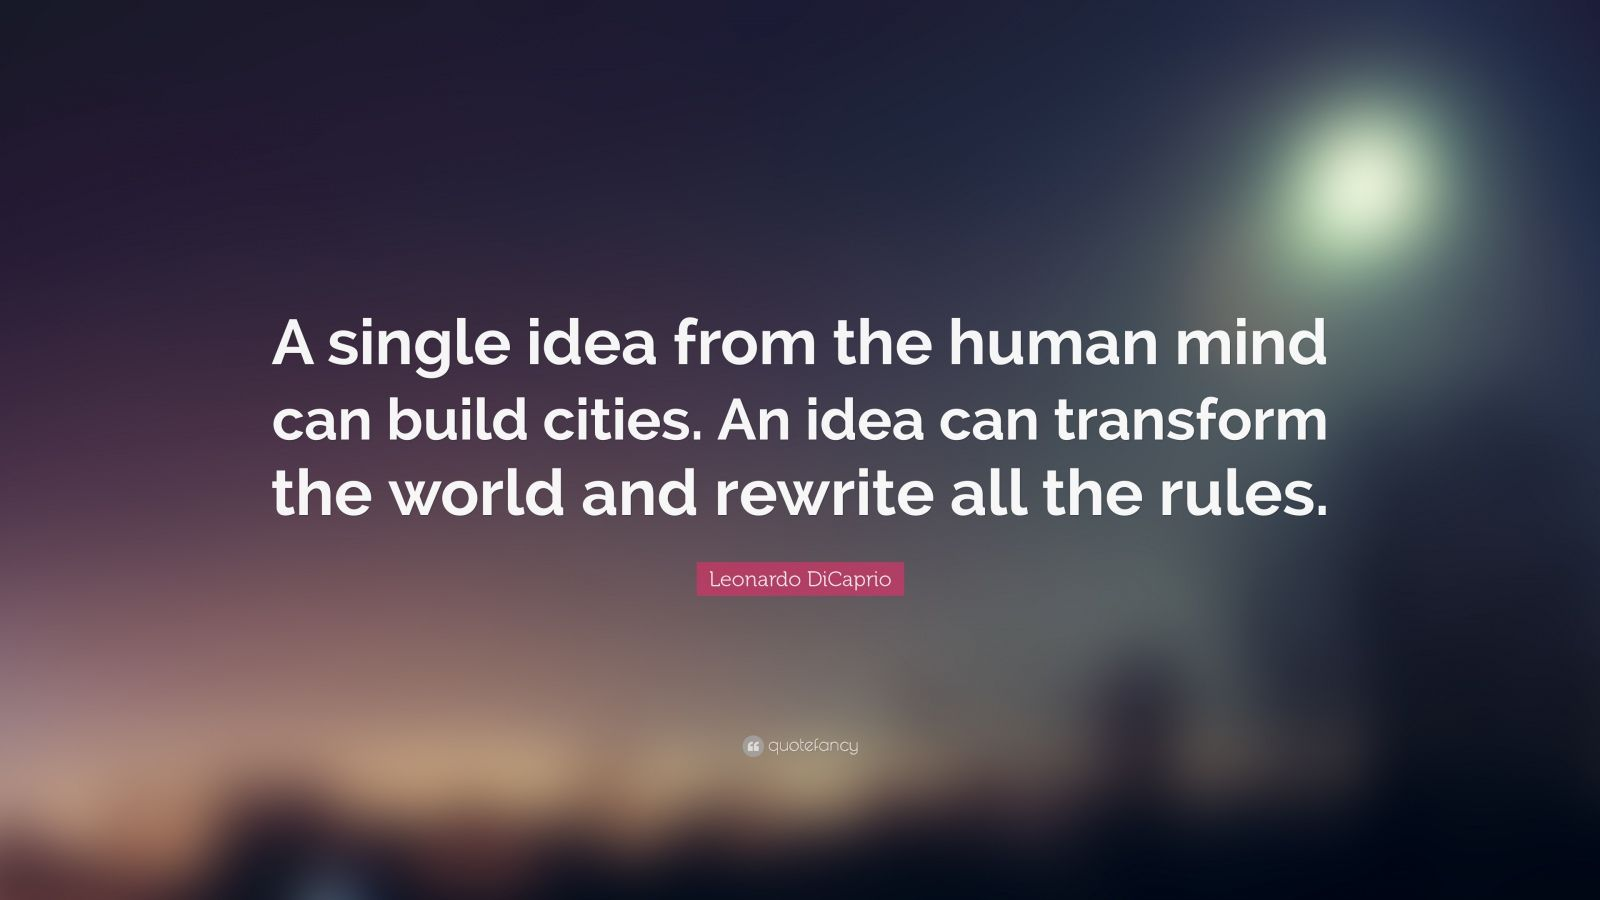 """Leonardo DiCaprio Quote: """"A single idea from the human mind can build cities. An idea can transform the world and rewrite all the rules."""""""